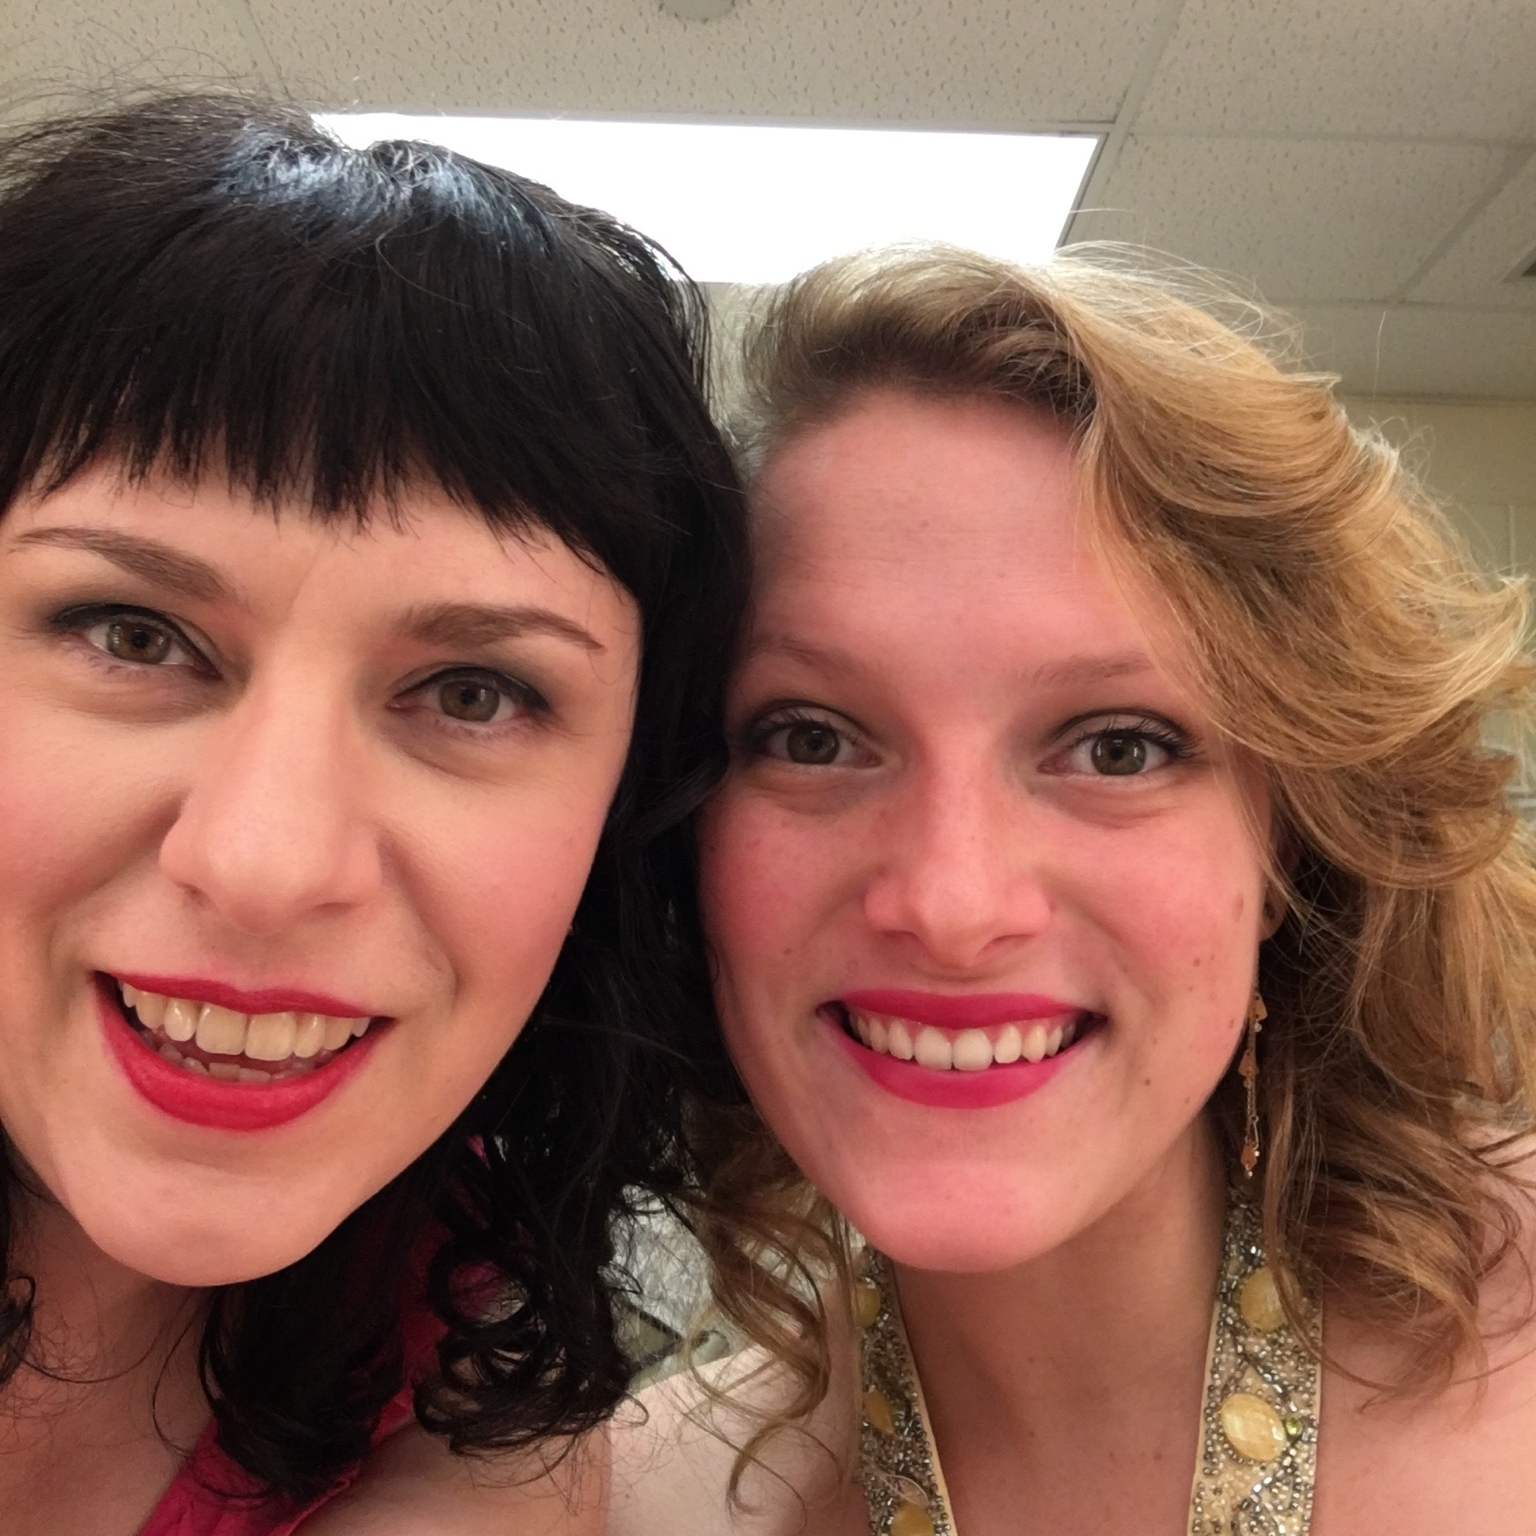 Deb Rabbai and Megan Reilly in the Dressing Room